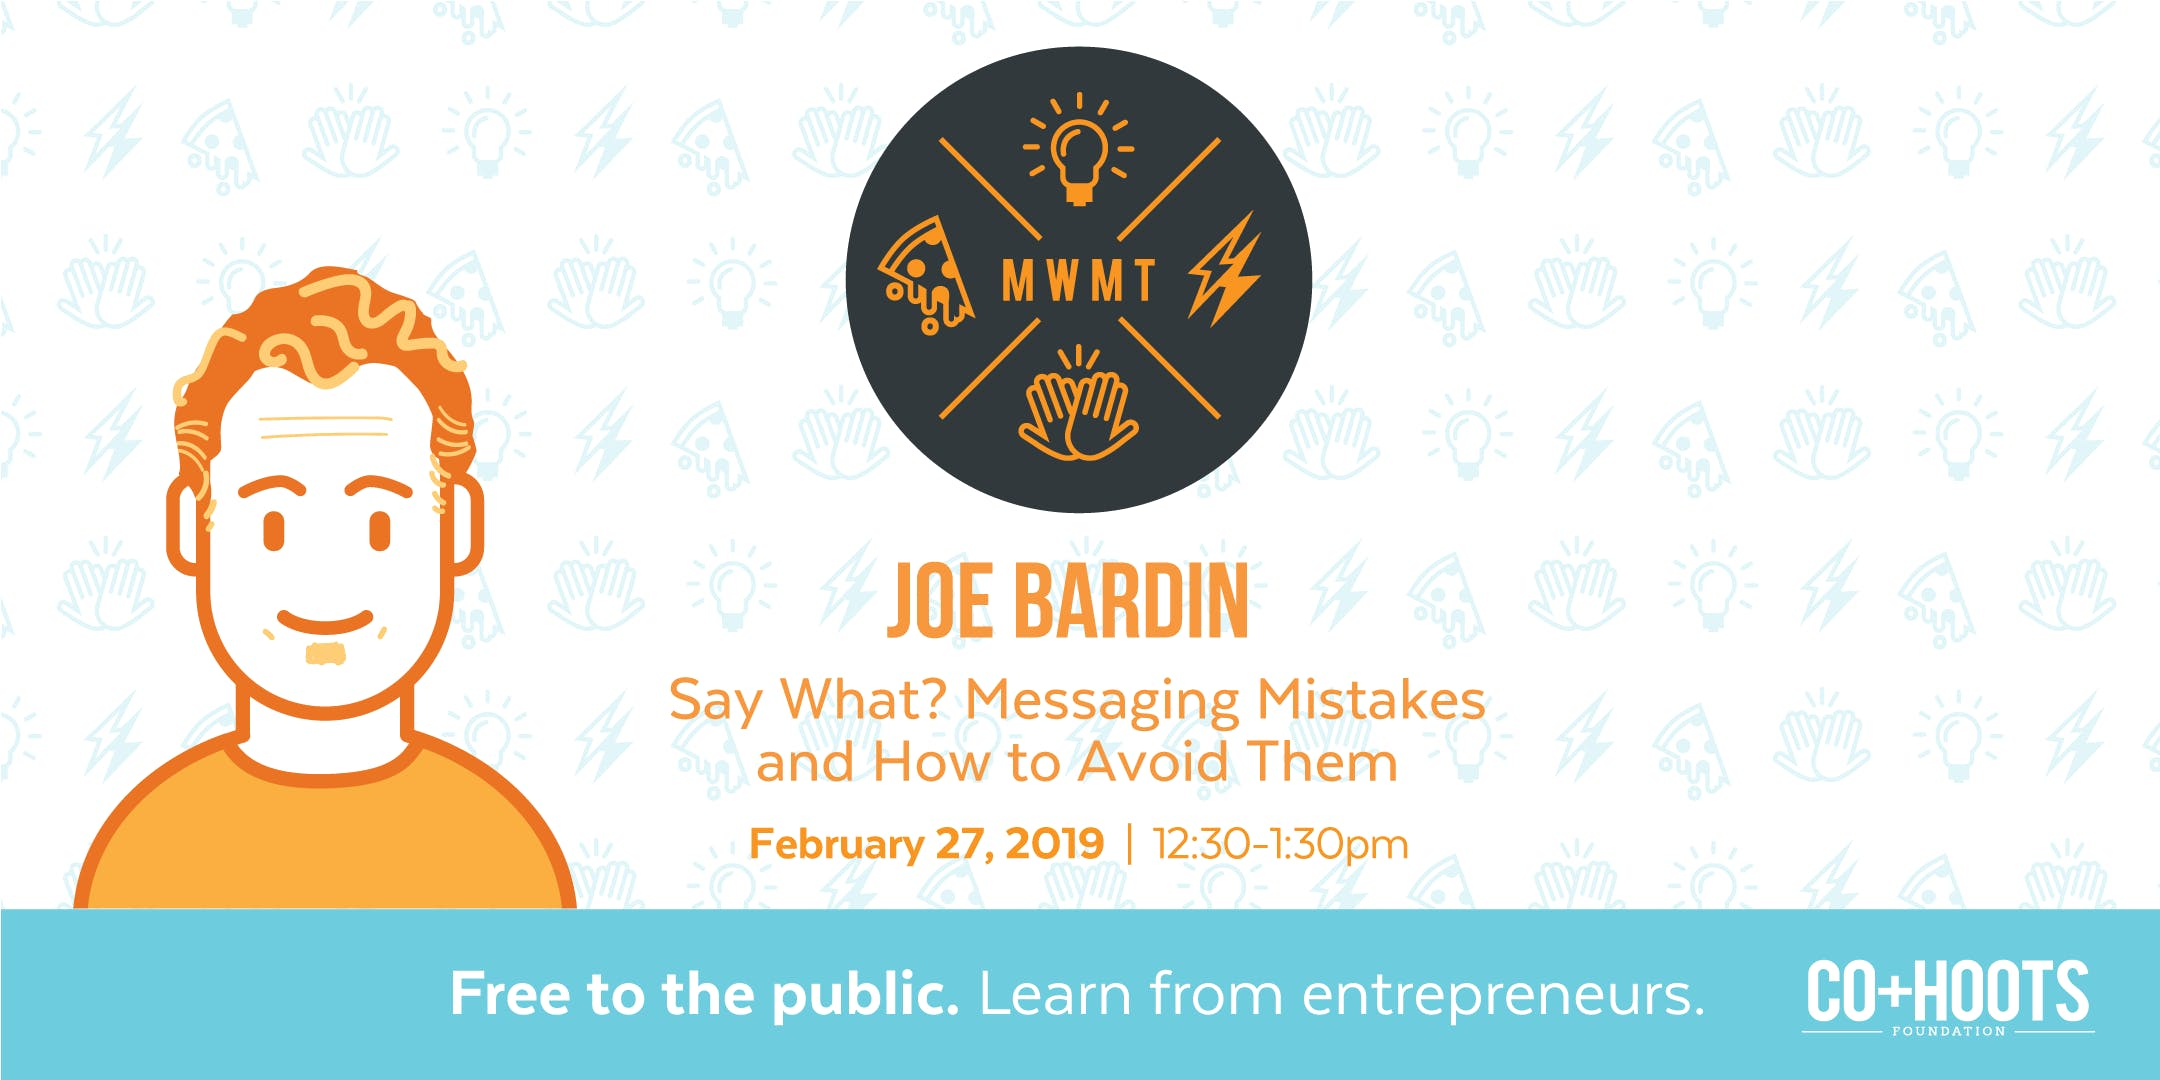 Say What? Messaging Mistakes and How to Avoid Them